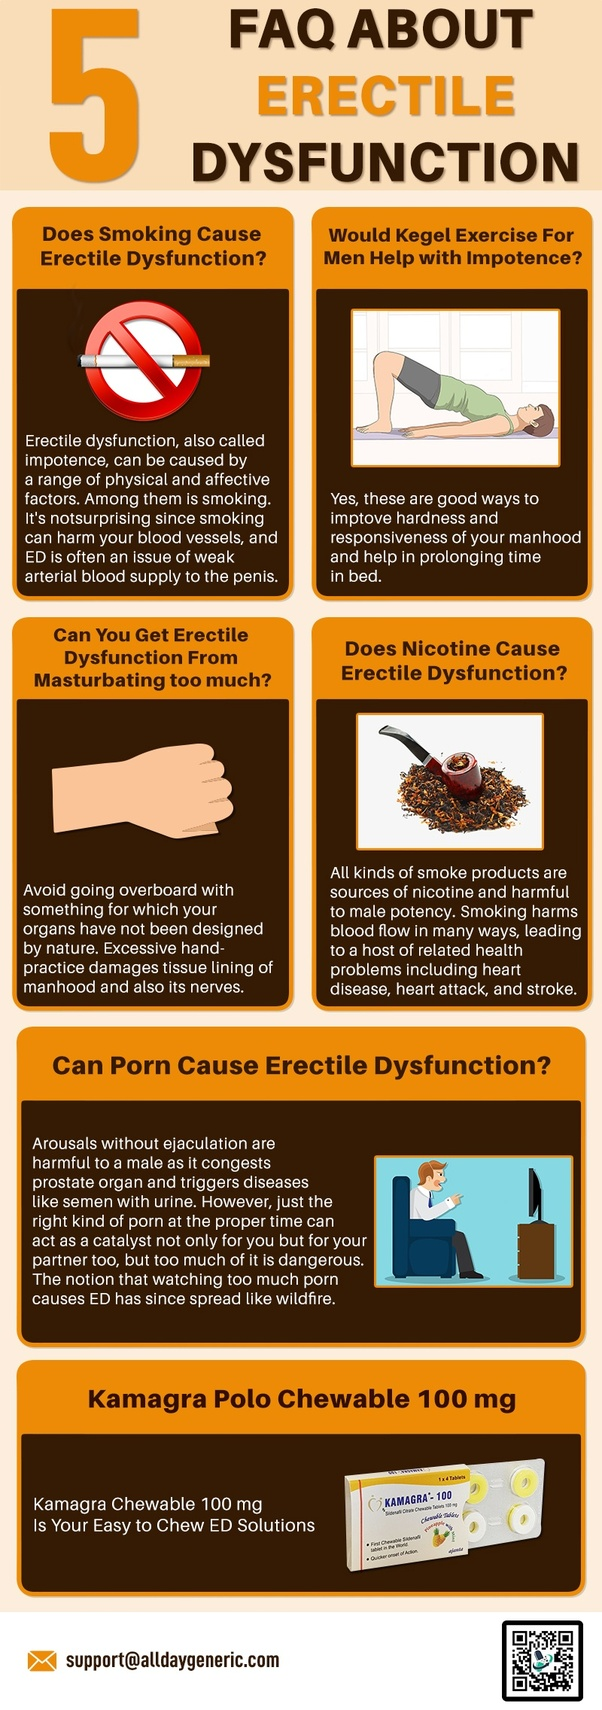 Maintain erection too much masturbation